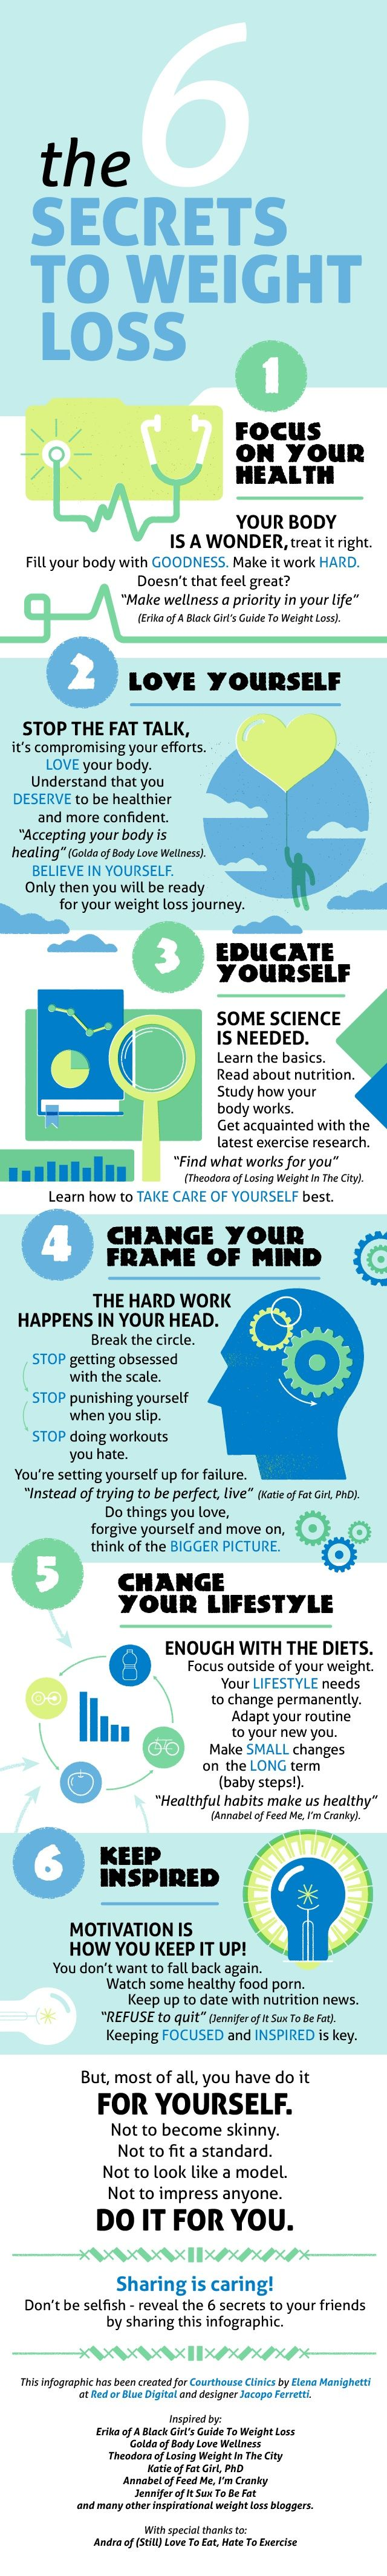 Infographic: The 6 Secrets to Weight Loss && The 8 best weight loss tips (Link)